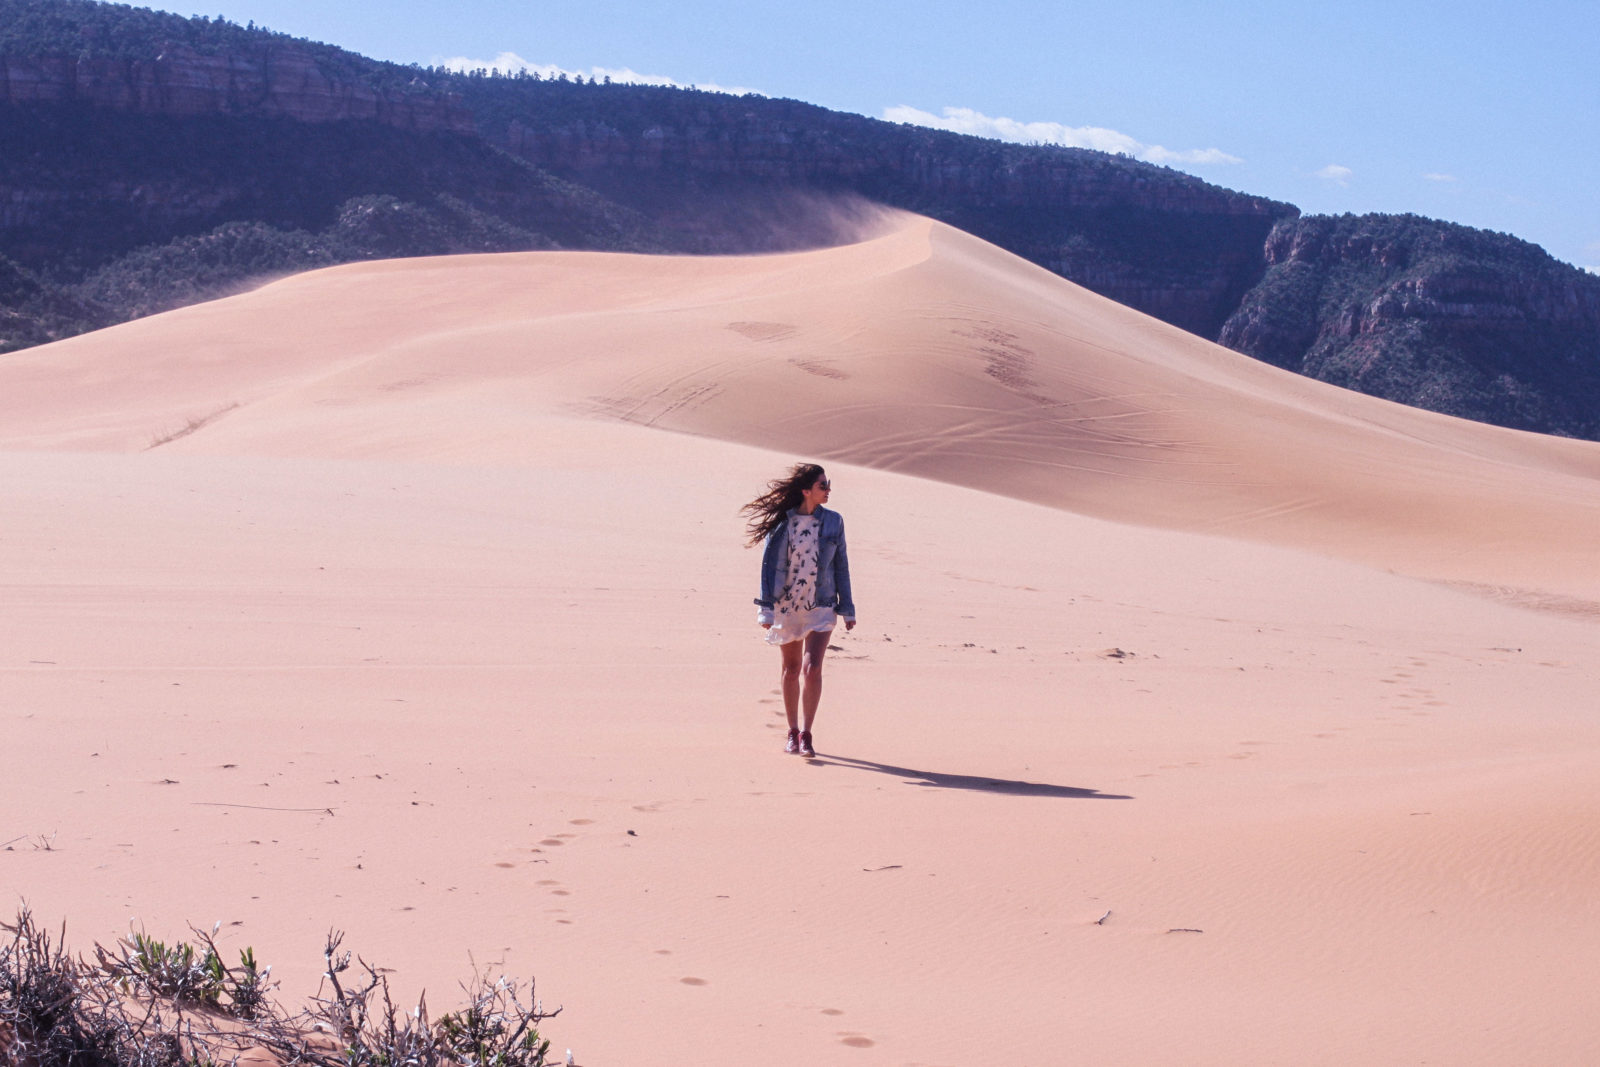 coral_pink_sand_dunes_kanab_utah_usa_roadtrip_trip_travel_donkeycool_route_backpack_red_boots-36